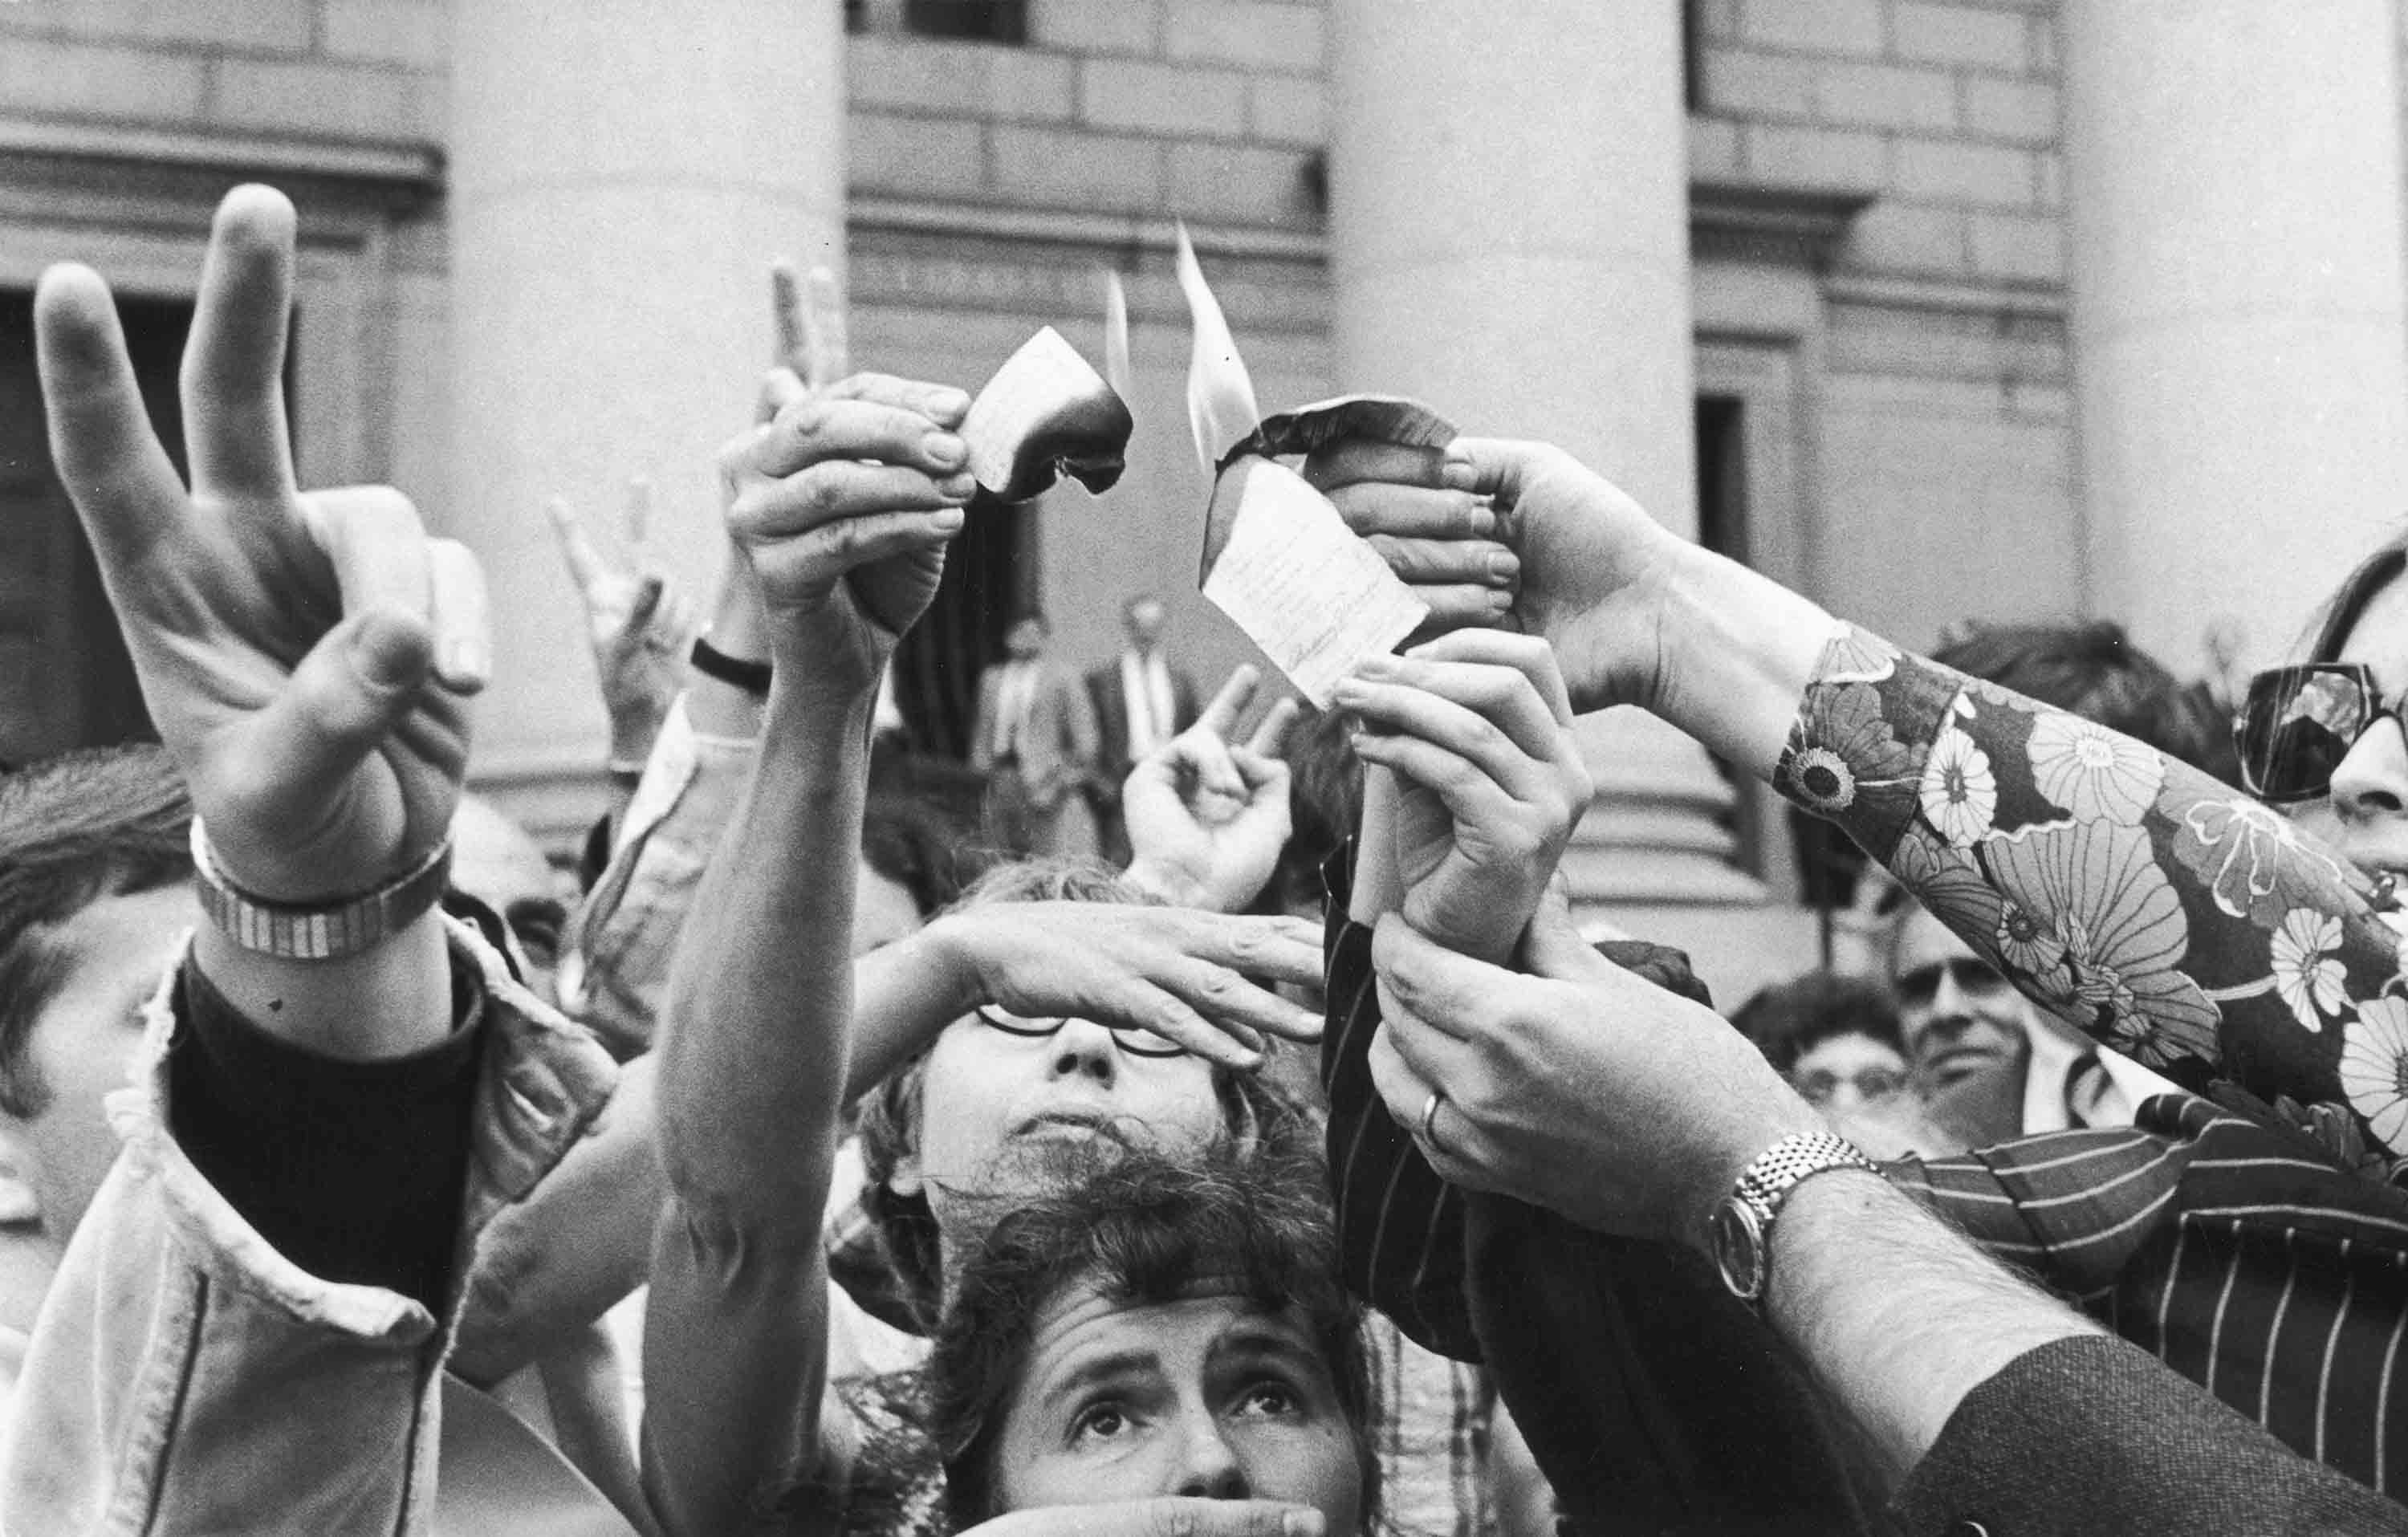 Anti-Vietnam War Protest in Foley Square, NYC, June 18, 1968